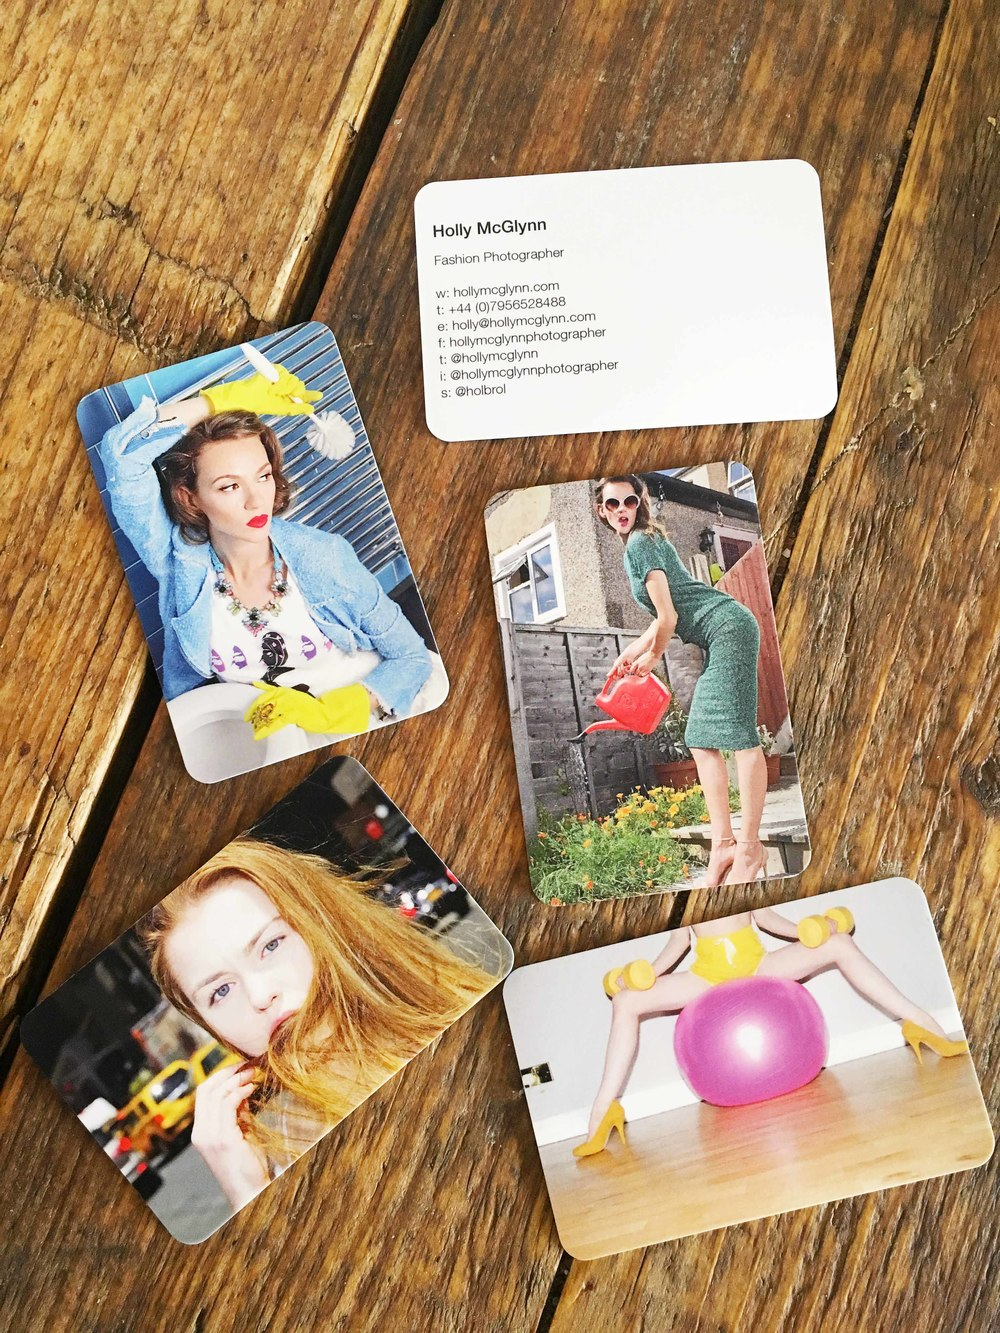 Some of my business cards from moo.com